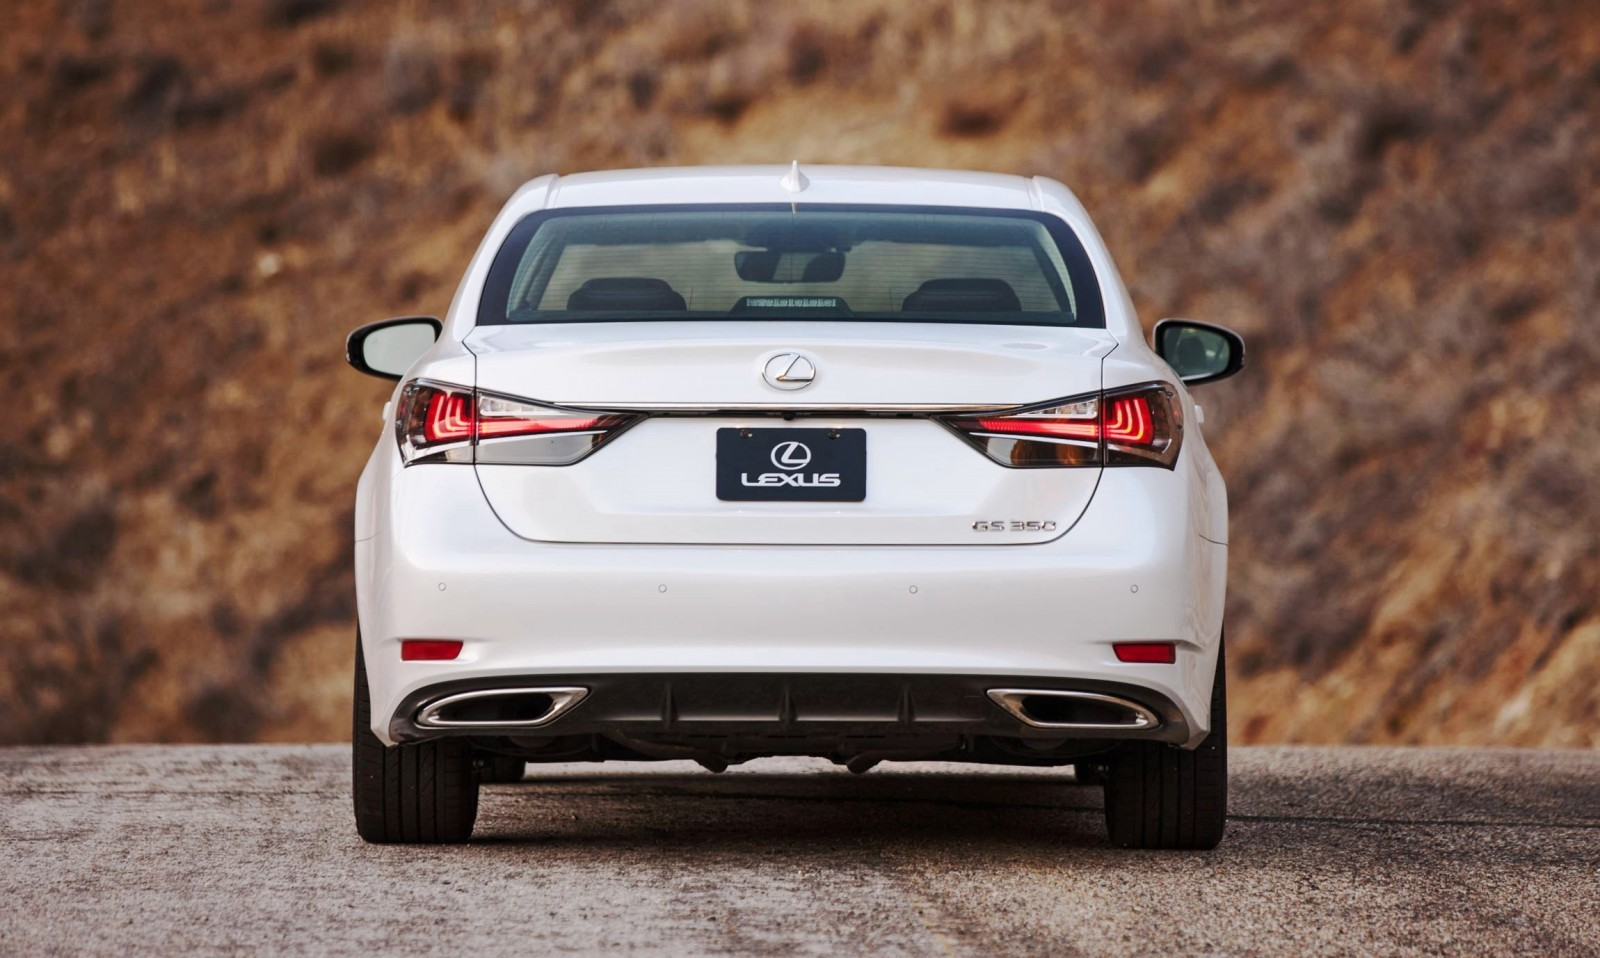 Road Test 2016 Lexus Gs 450h F Sport as well Minor Changes In Store For The 2015 Lexus Rx Lineup 123212 furthermore 1911 Chevrolet together with 100537343 2016 Lexus Lx 570 4wd 4 Door Angular Rear Exterior View moreover T3 12 8. on lexus rx road test